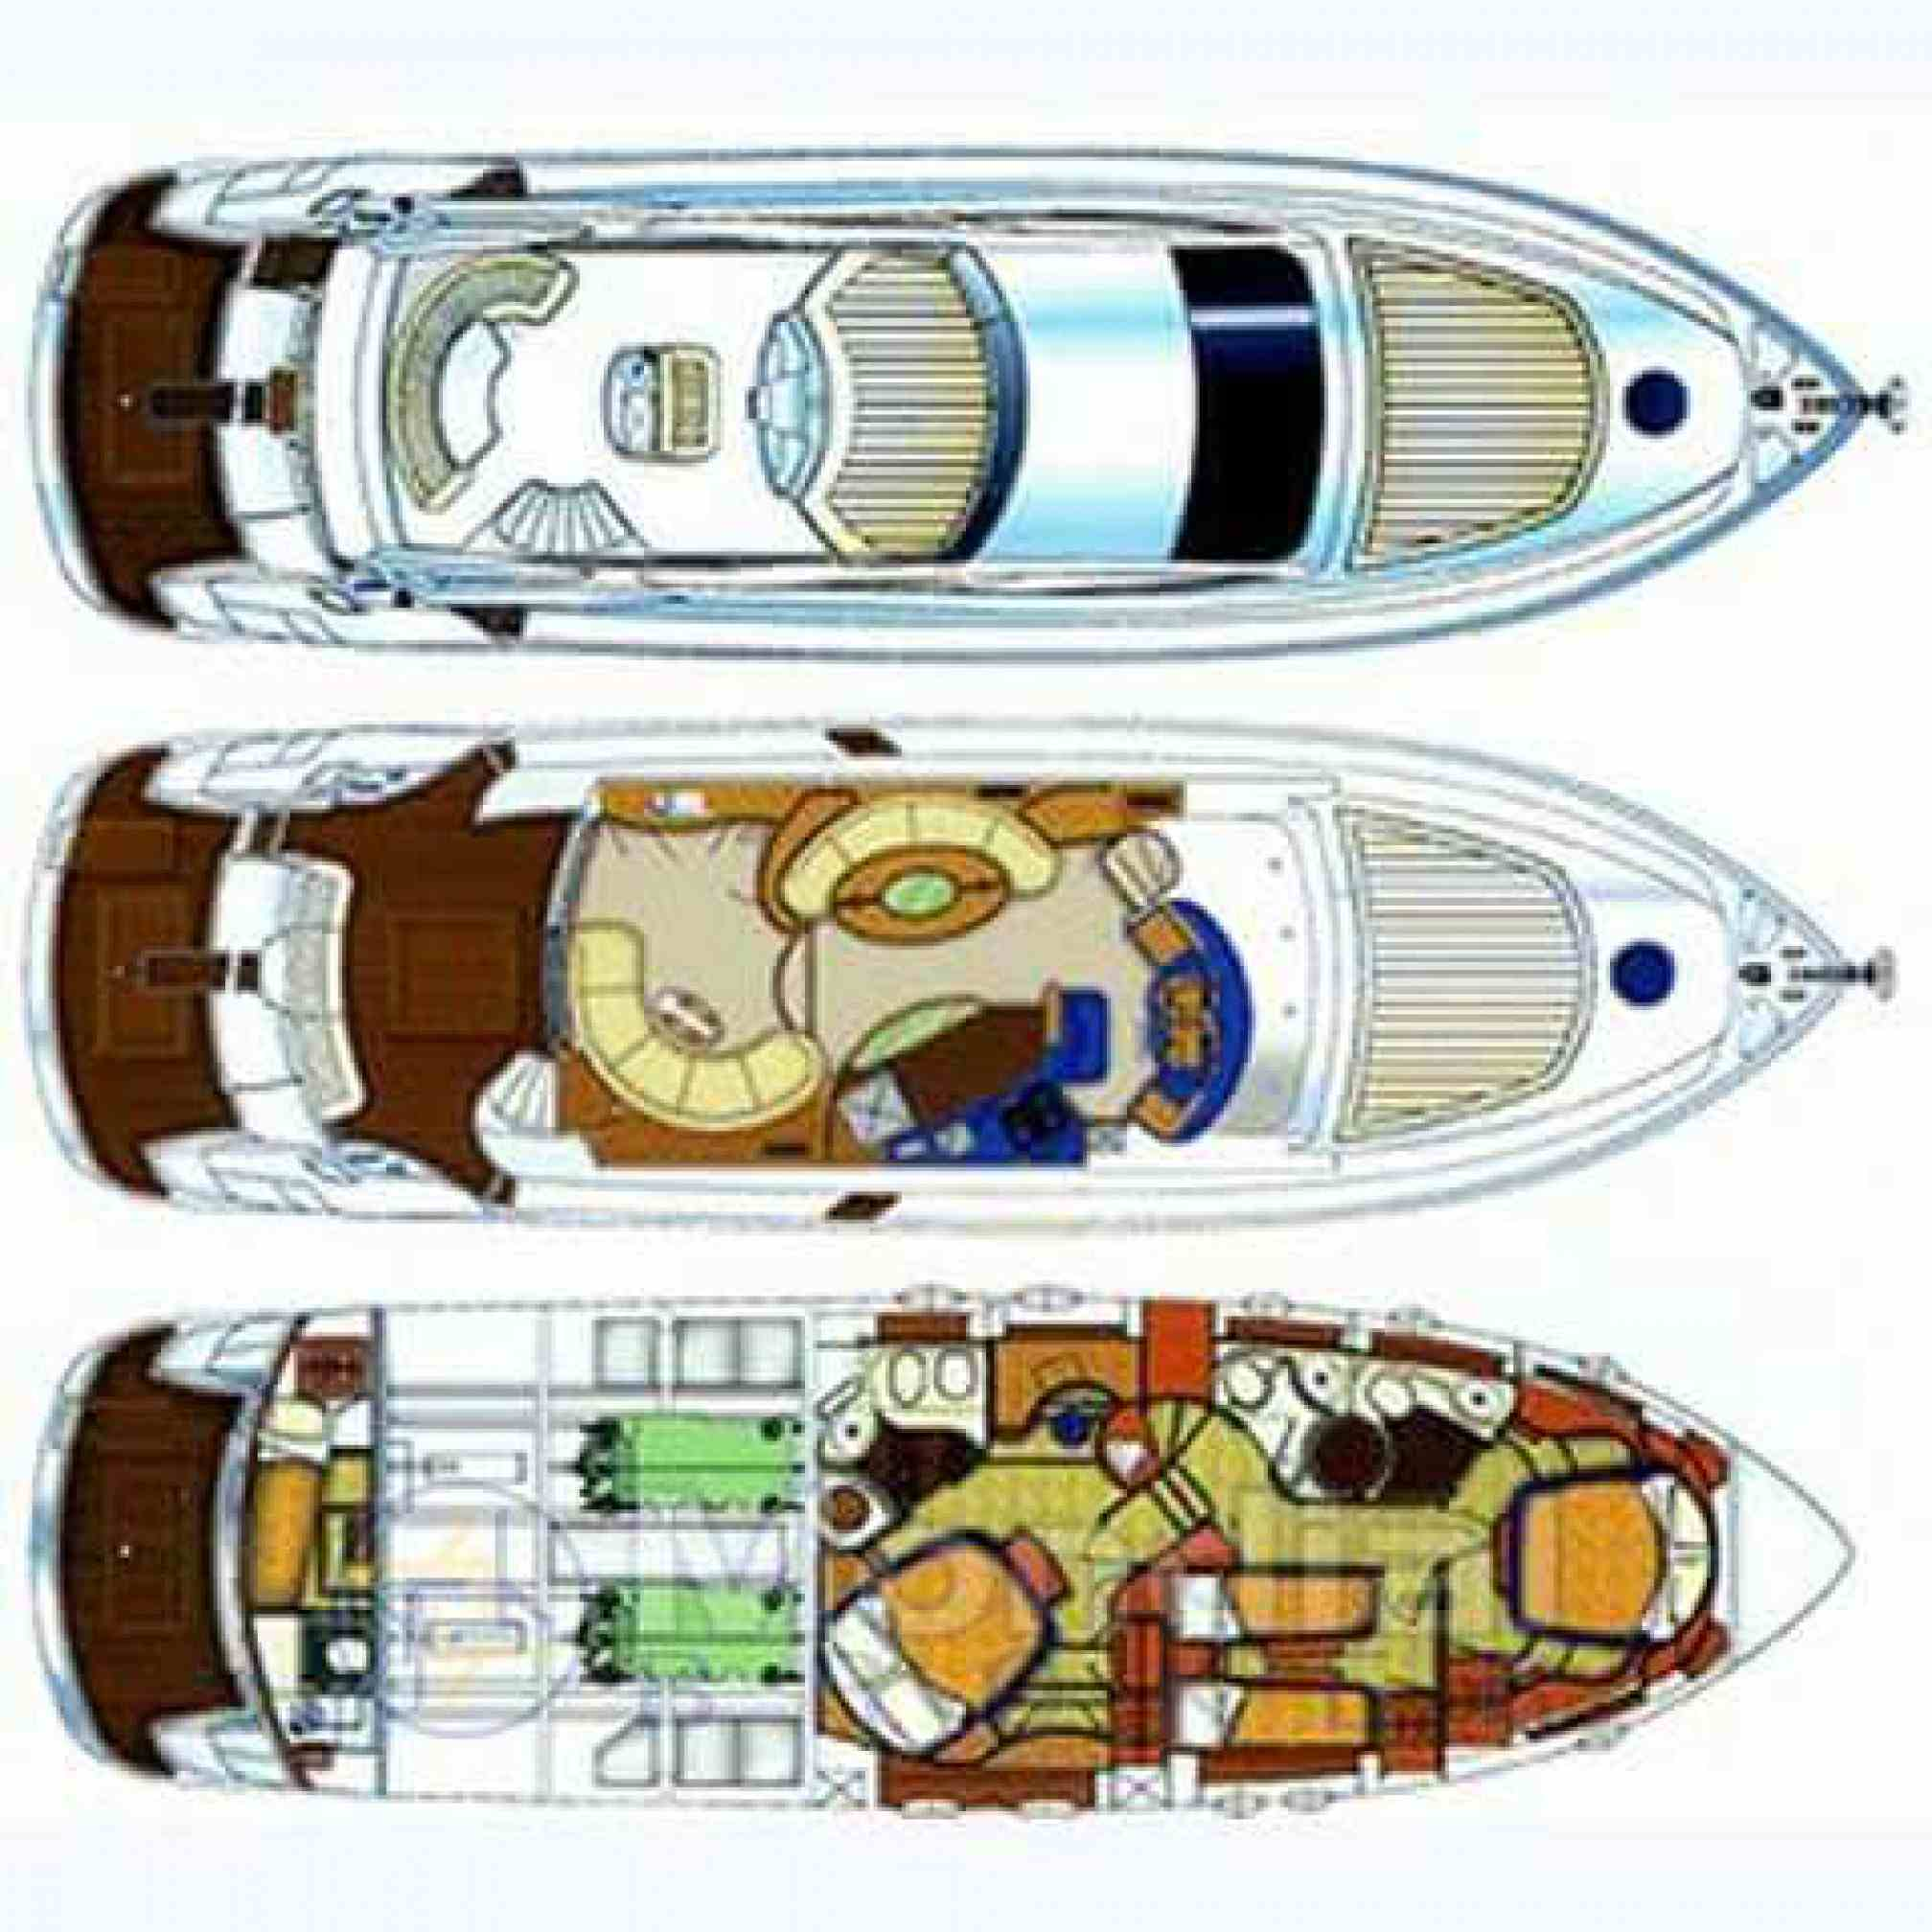 Aicon 56 Fly yacht charter layout